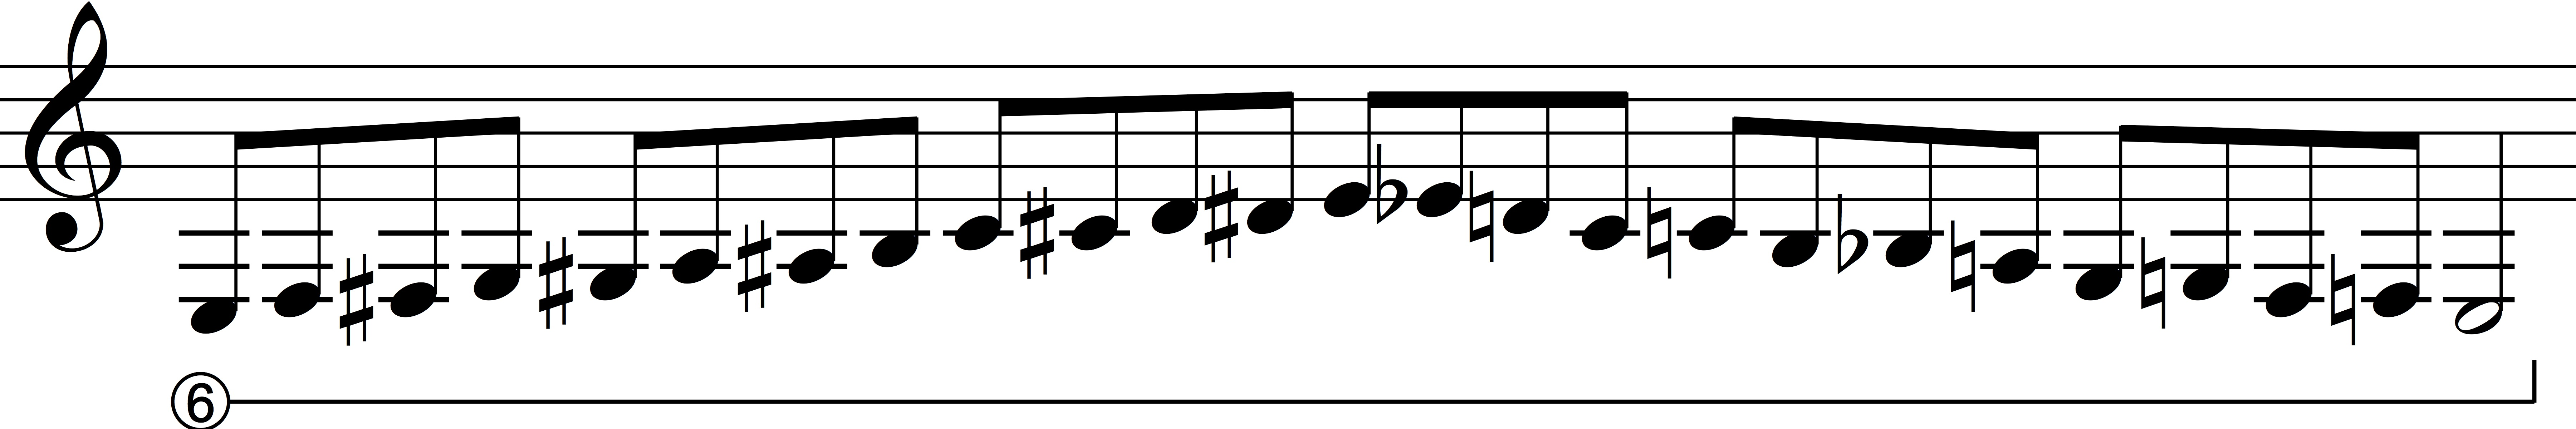 Piotr's Chromatic Linear Scale.jpg